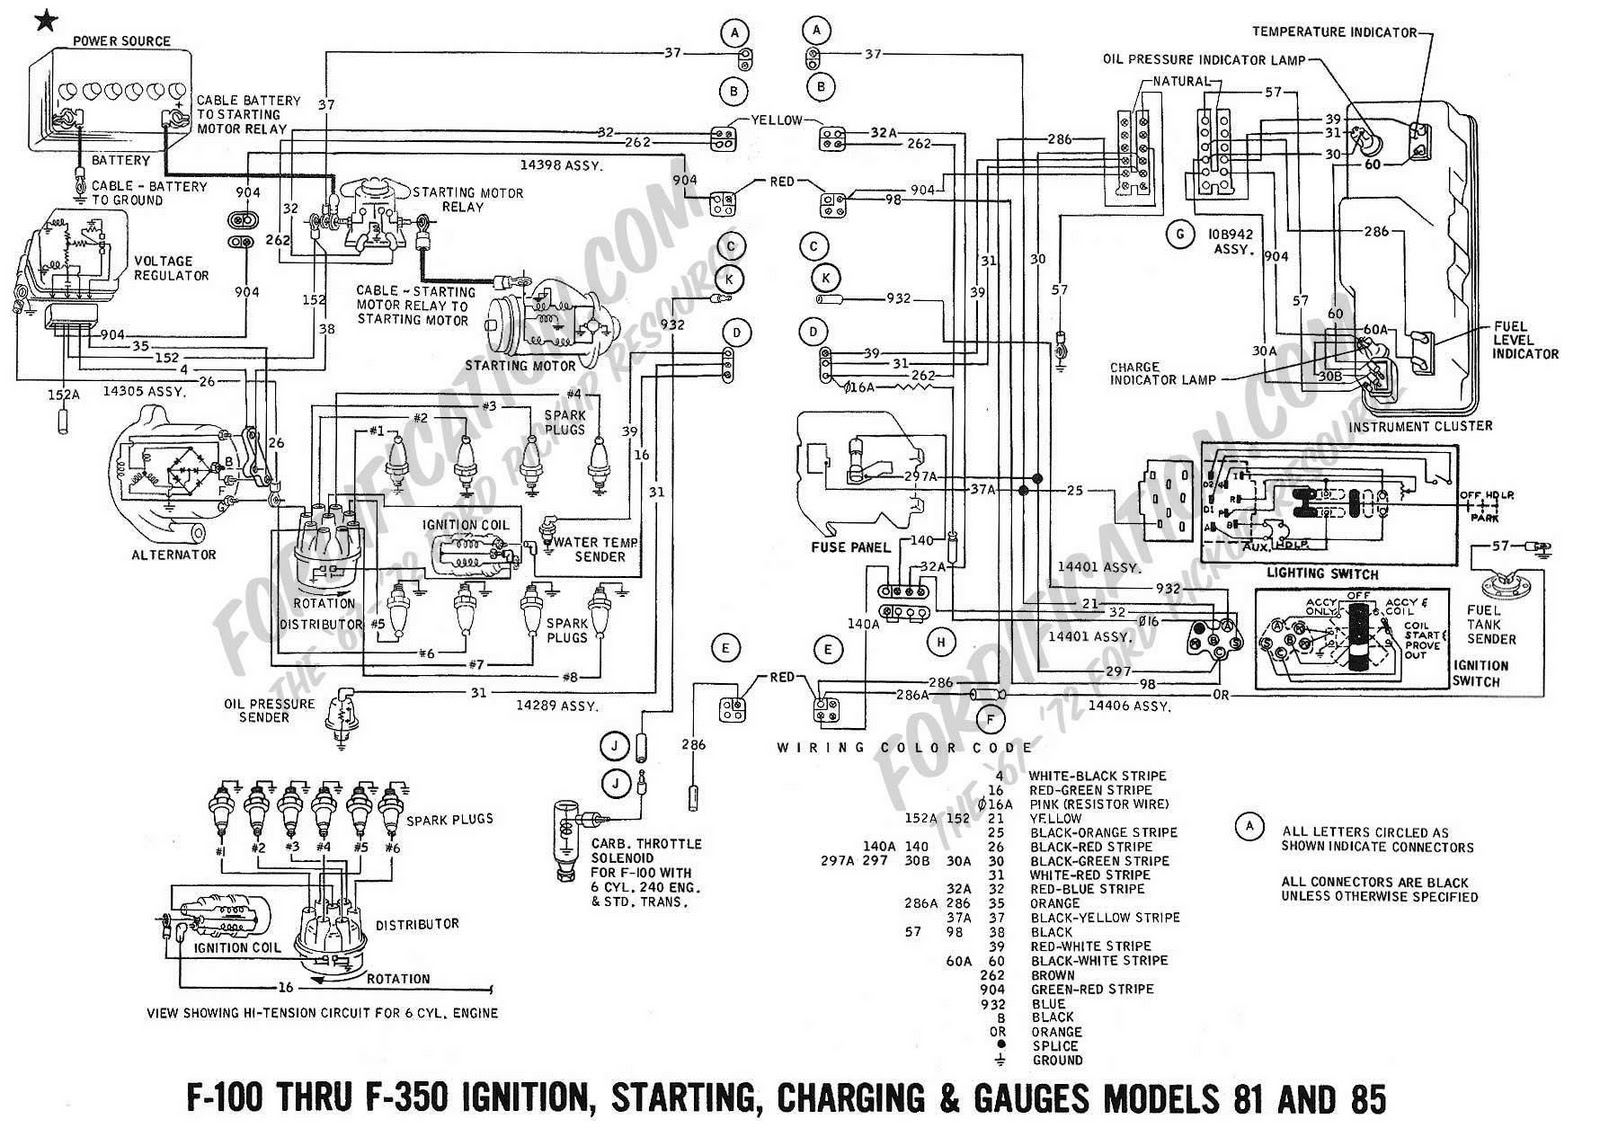 1968 Ford Ranger Solenoid Wiring - Wiring Diagram M2 Ranger Ignition Switch Wiring Diagram on